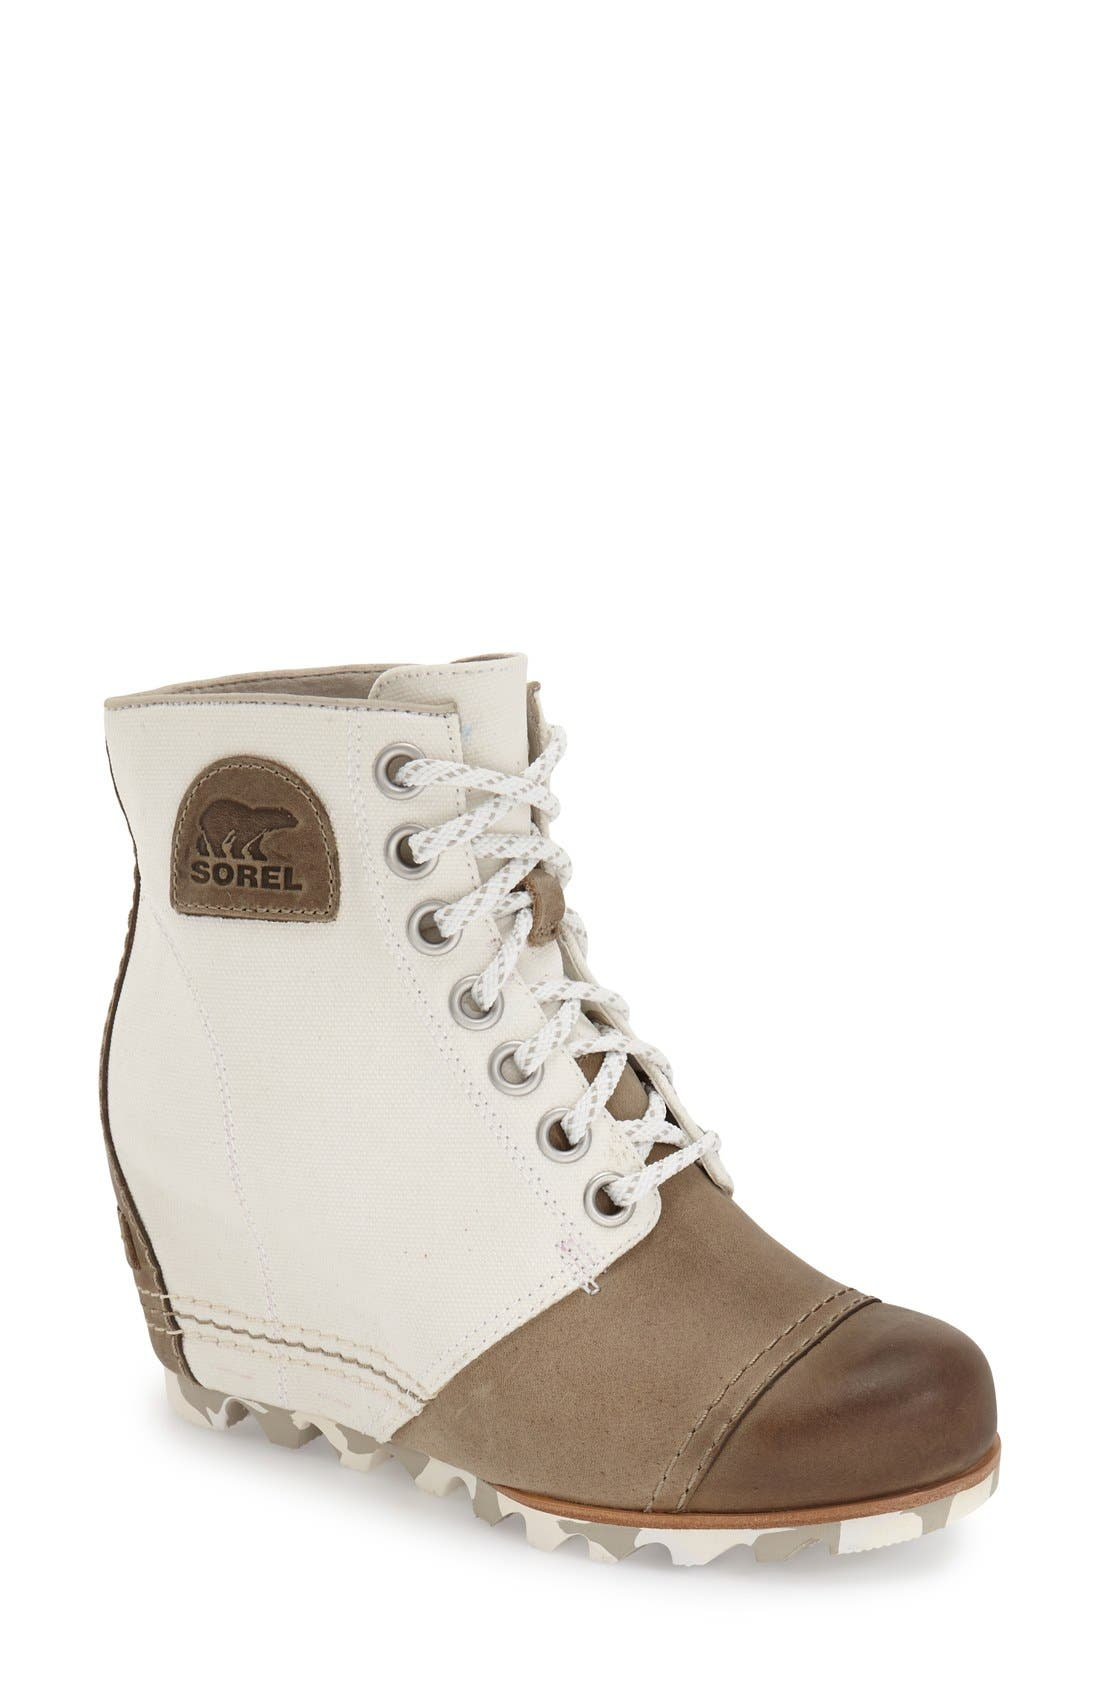 Main Image - SOREL '1964 Premium Canvas' Waterproof Wedge Bootie (Women)